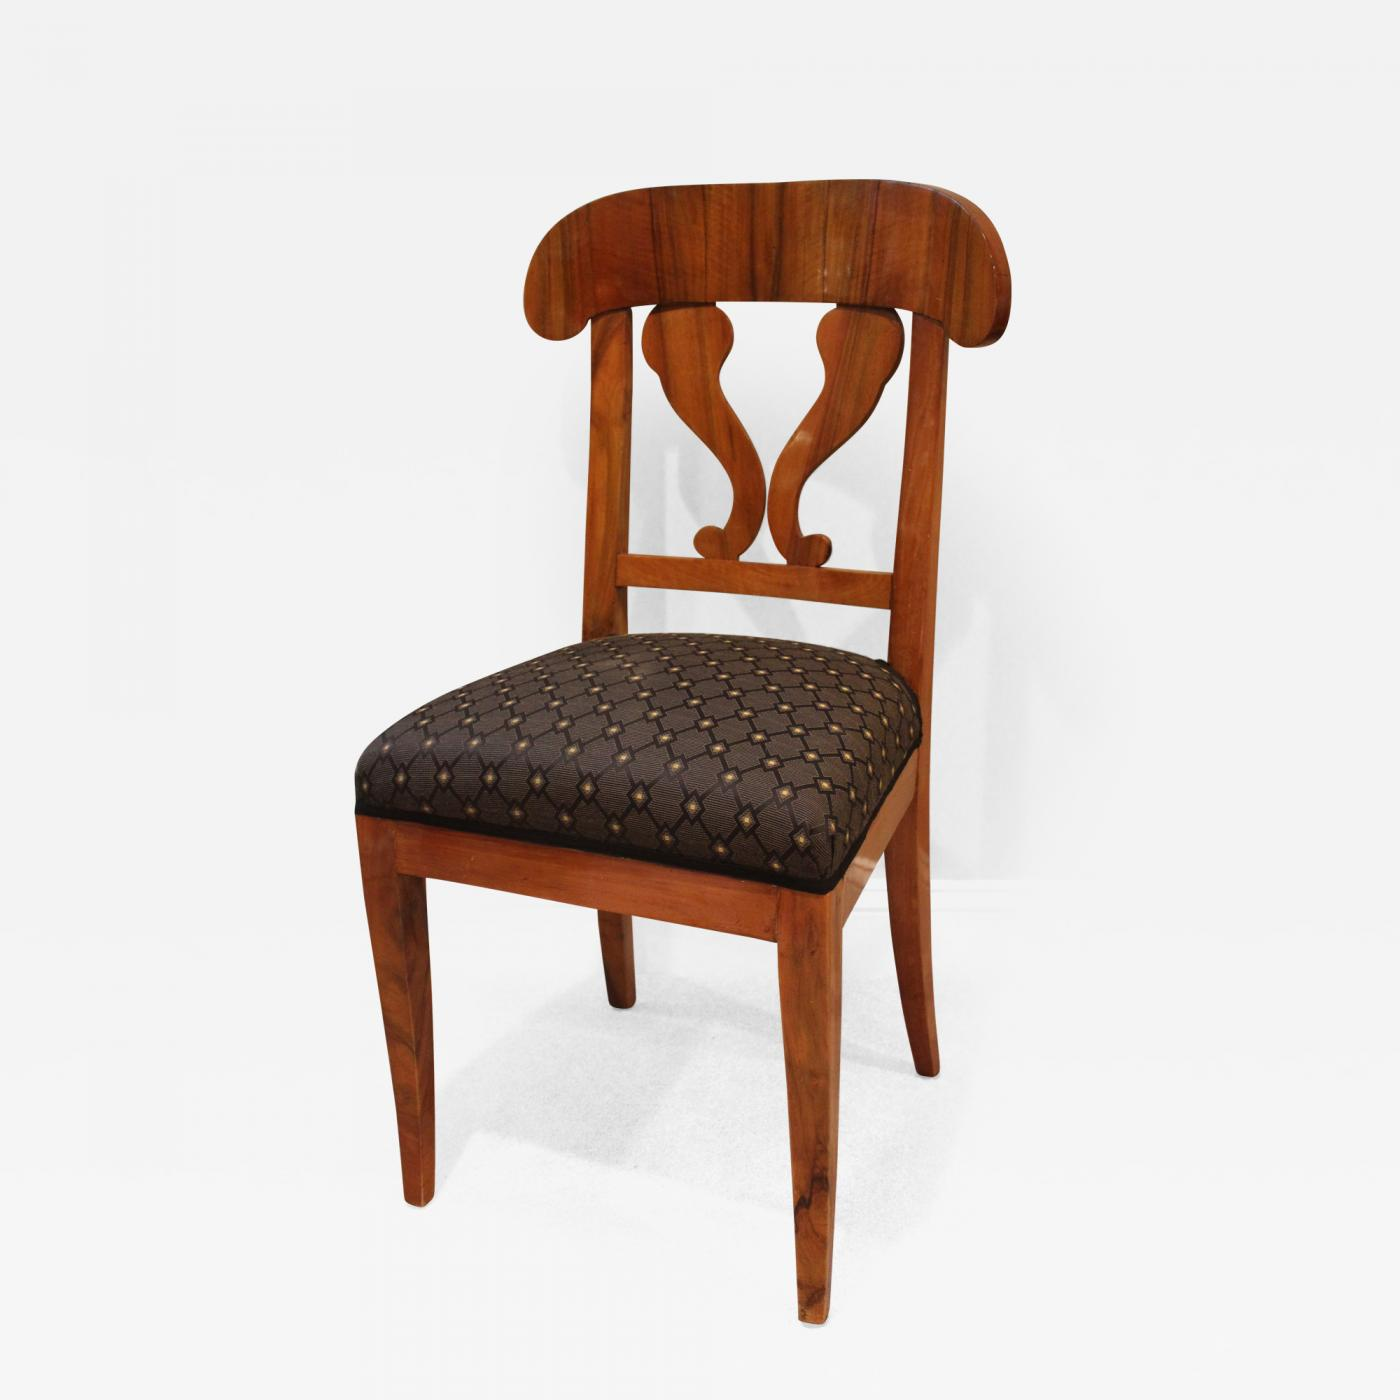 Beau Listings / Furniture / Seating / Corner Chairs · Biedermeier Chair Germany  1830